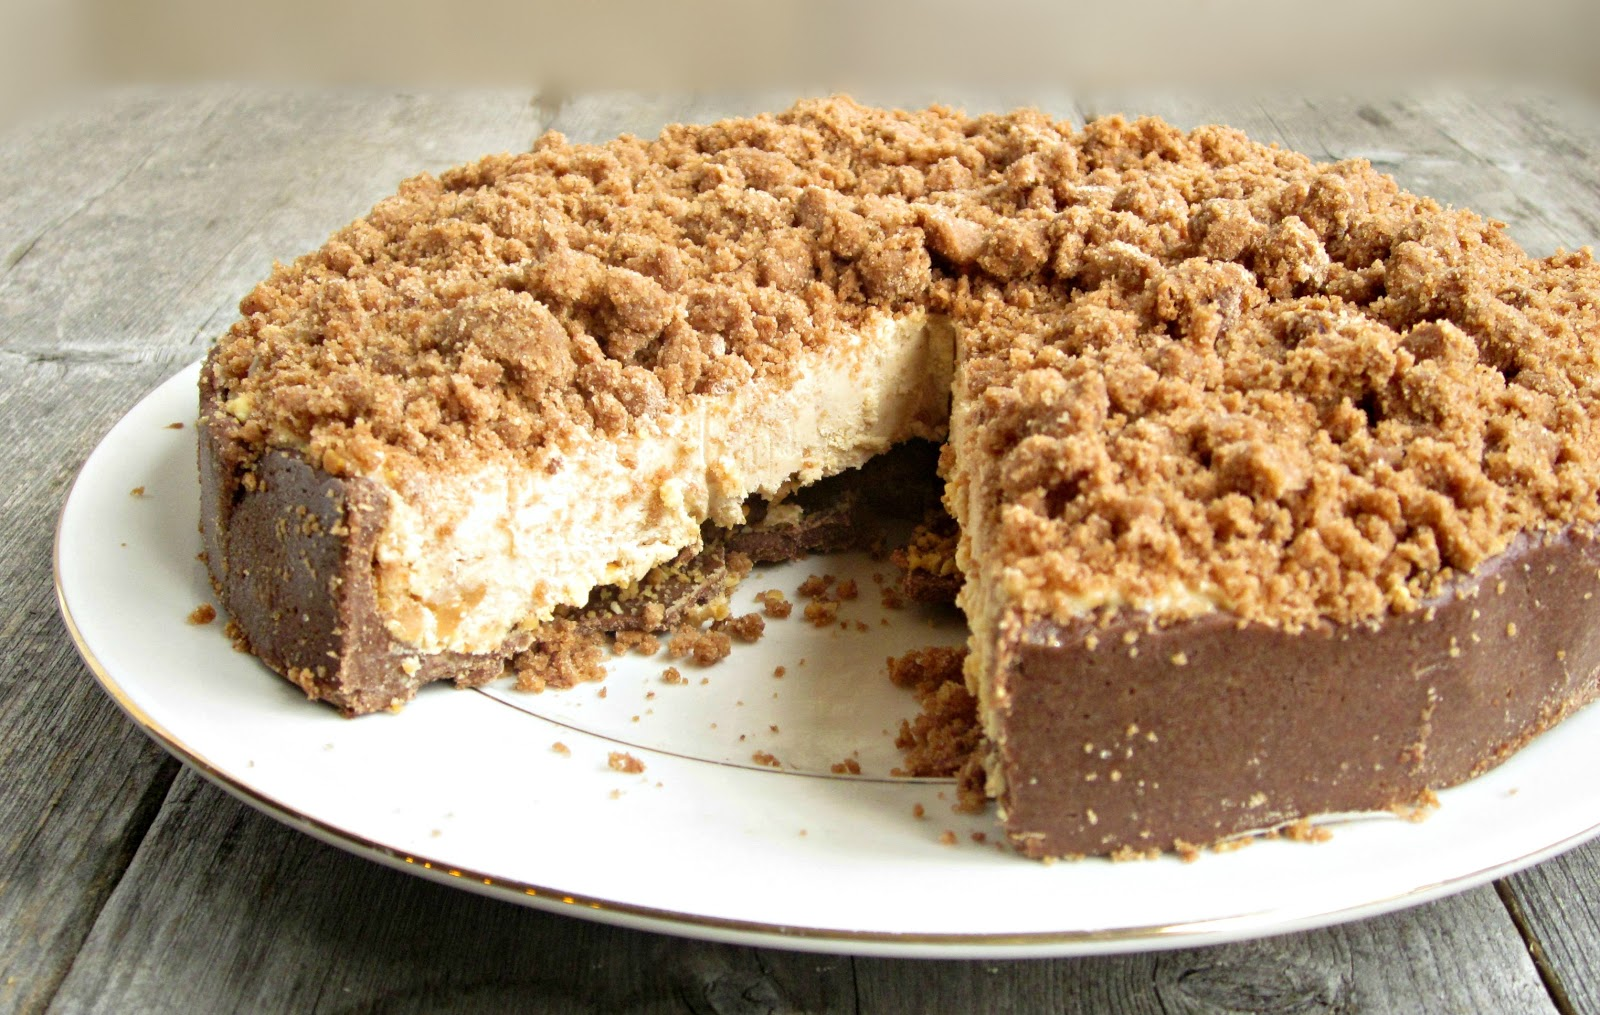 How To Make Crumbs For A Crumb Cake